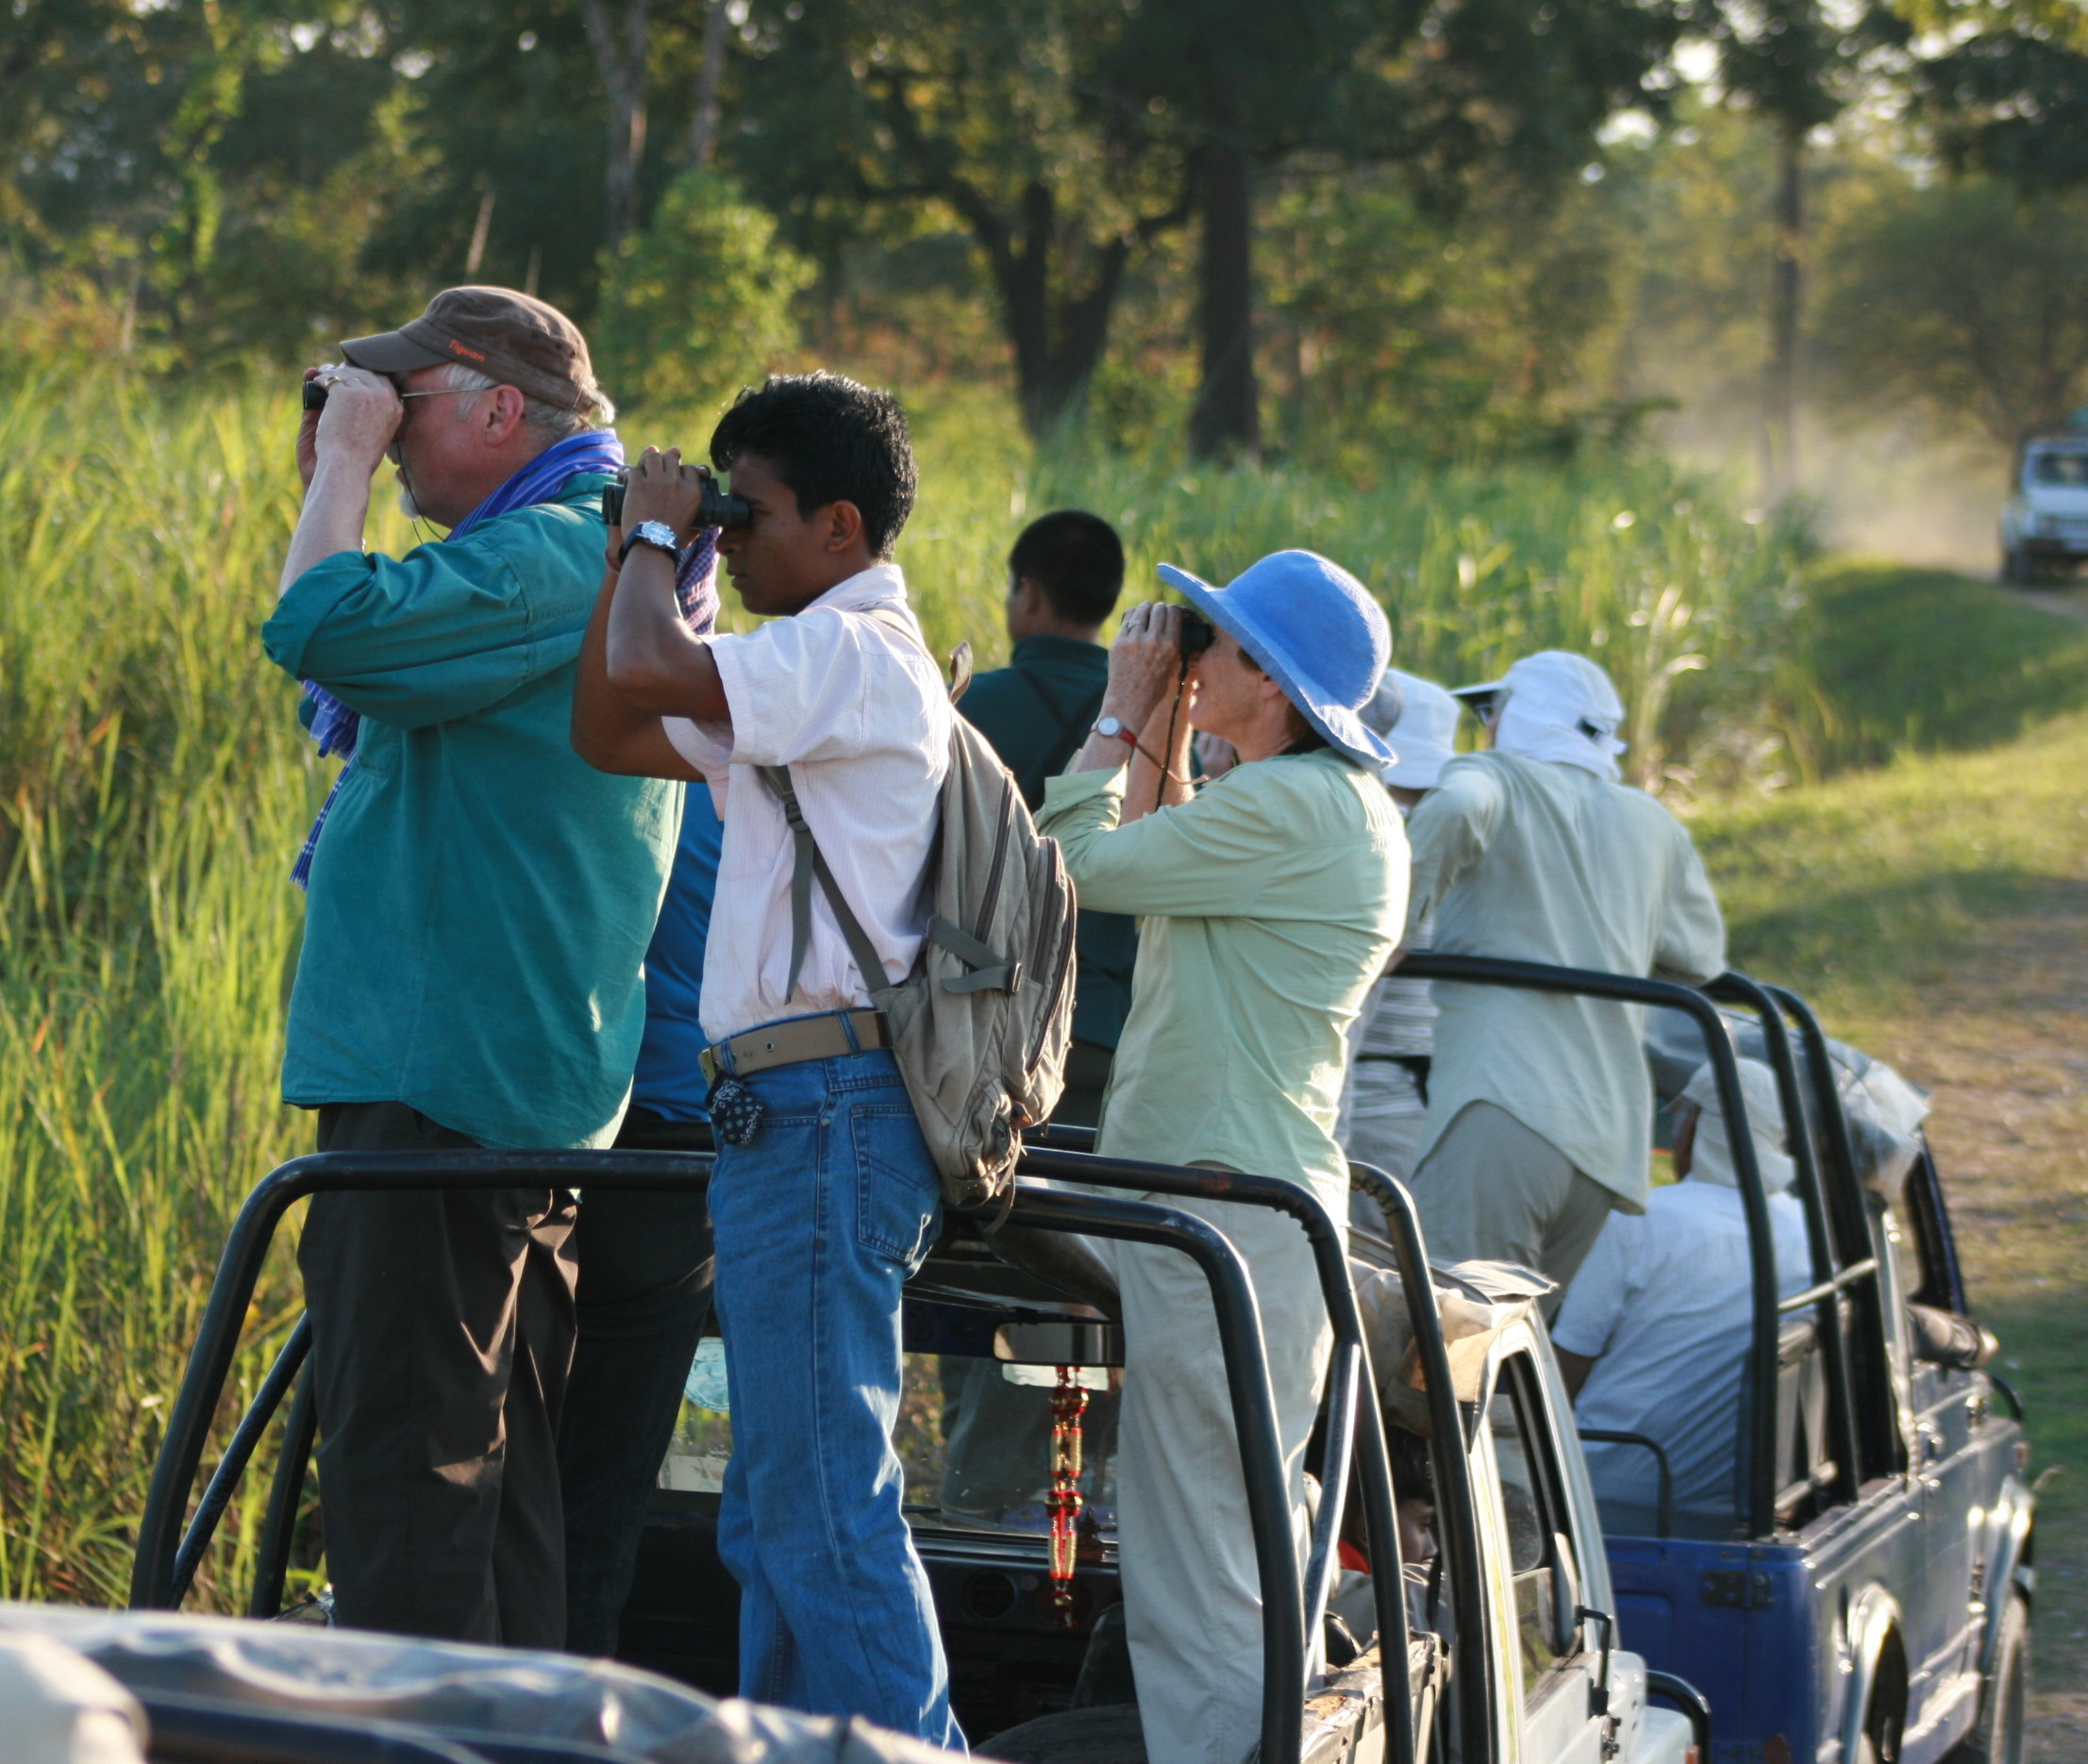 Jeep Safari in kaziranga,AC.jpg